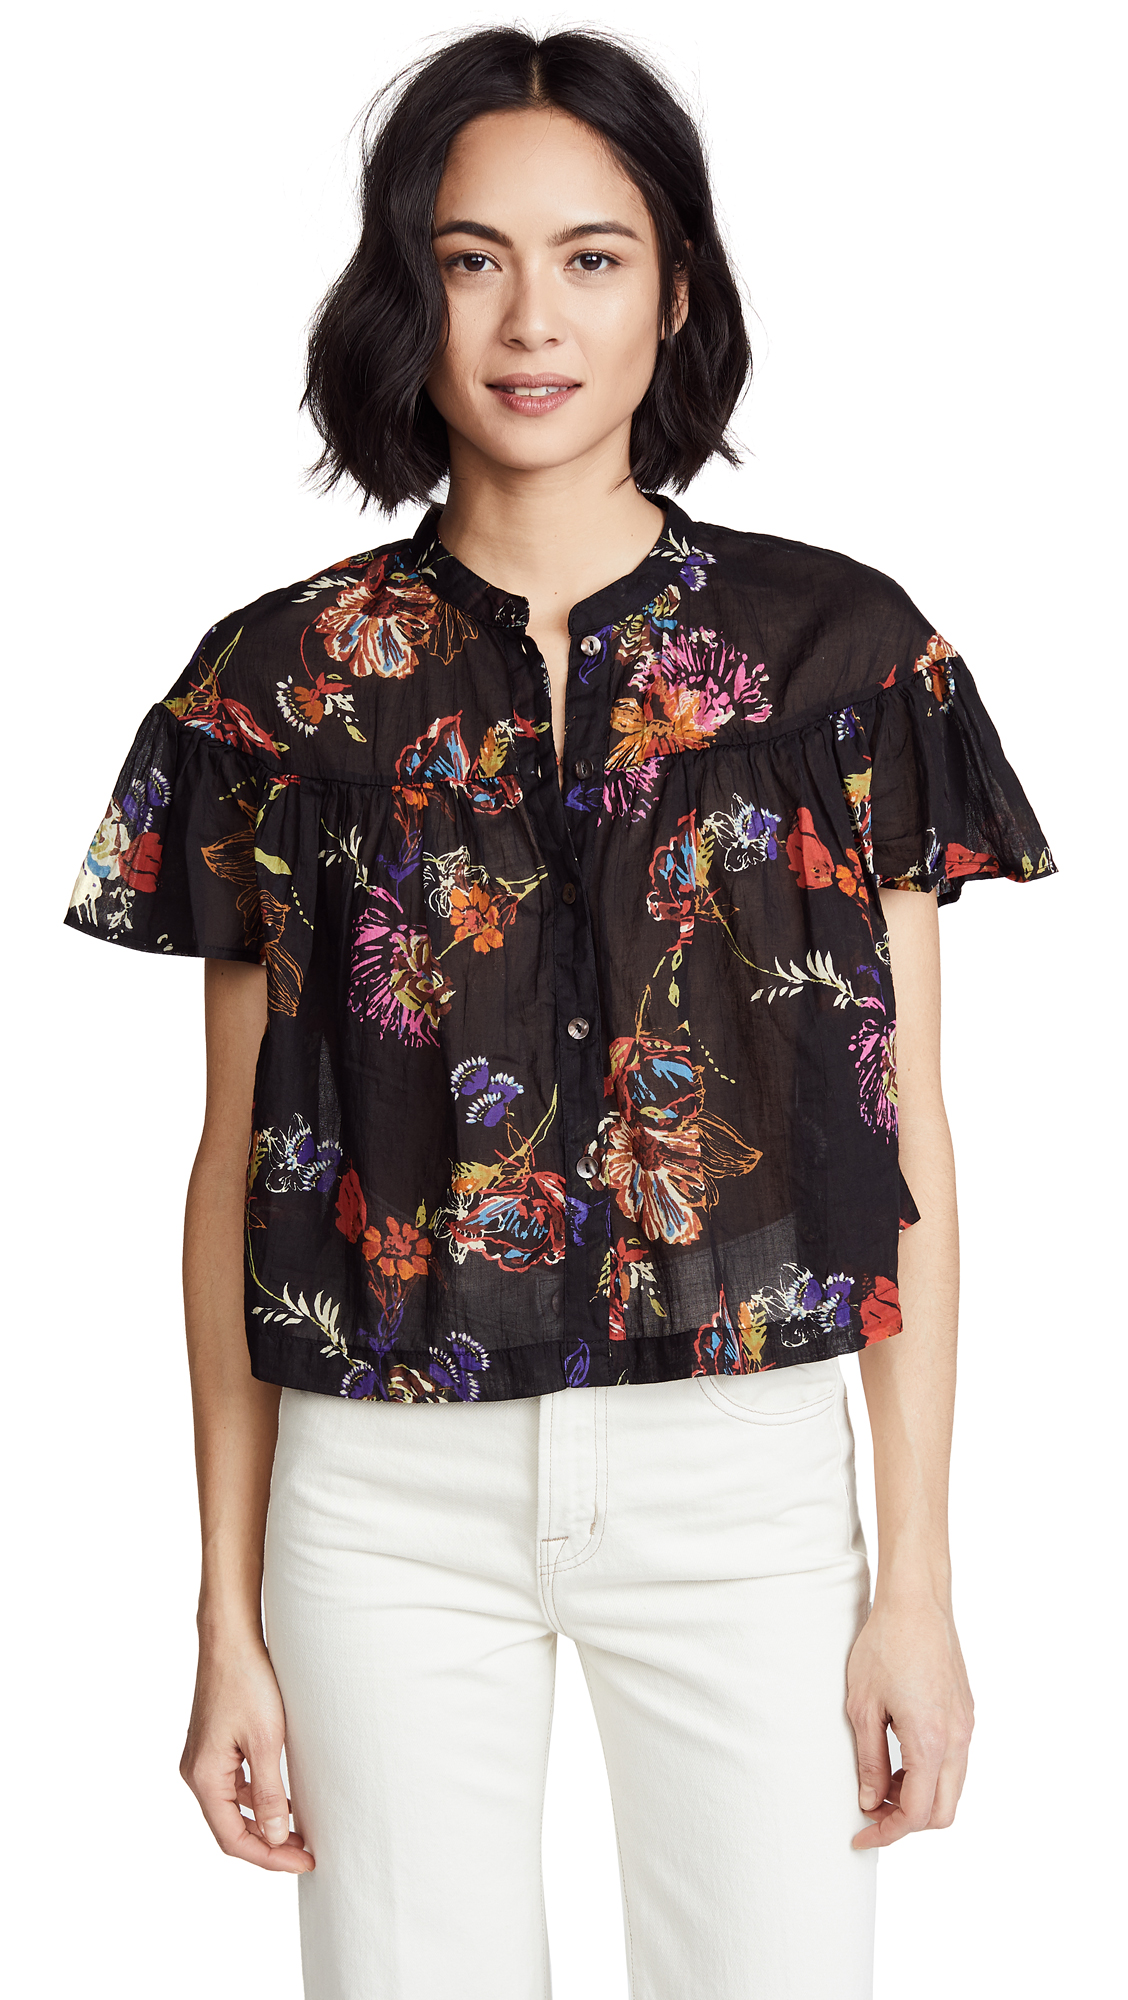 SWEET ESCAPE BUTTONDOWN BLOUSE